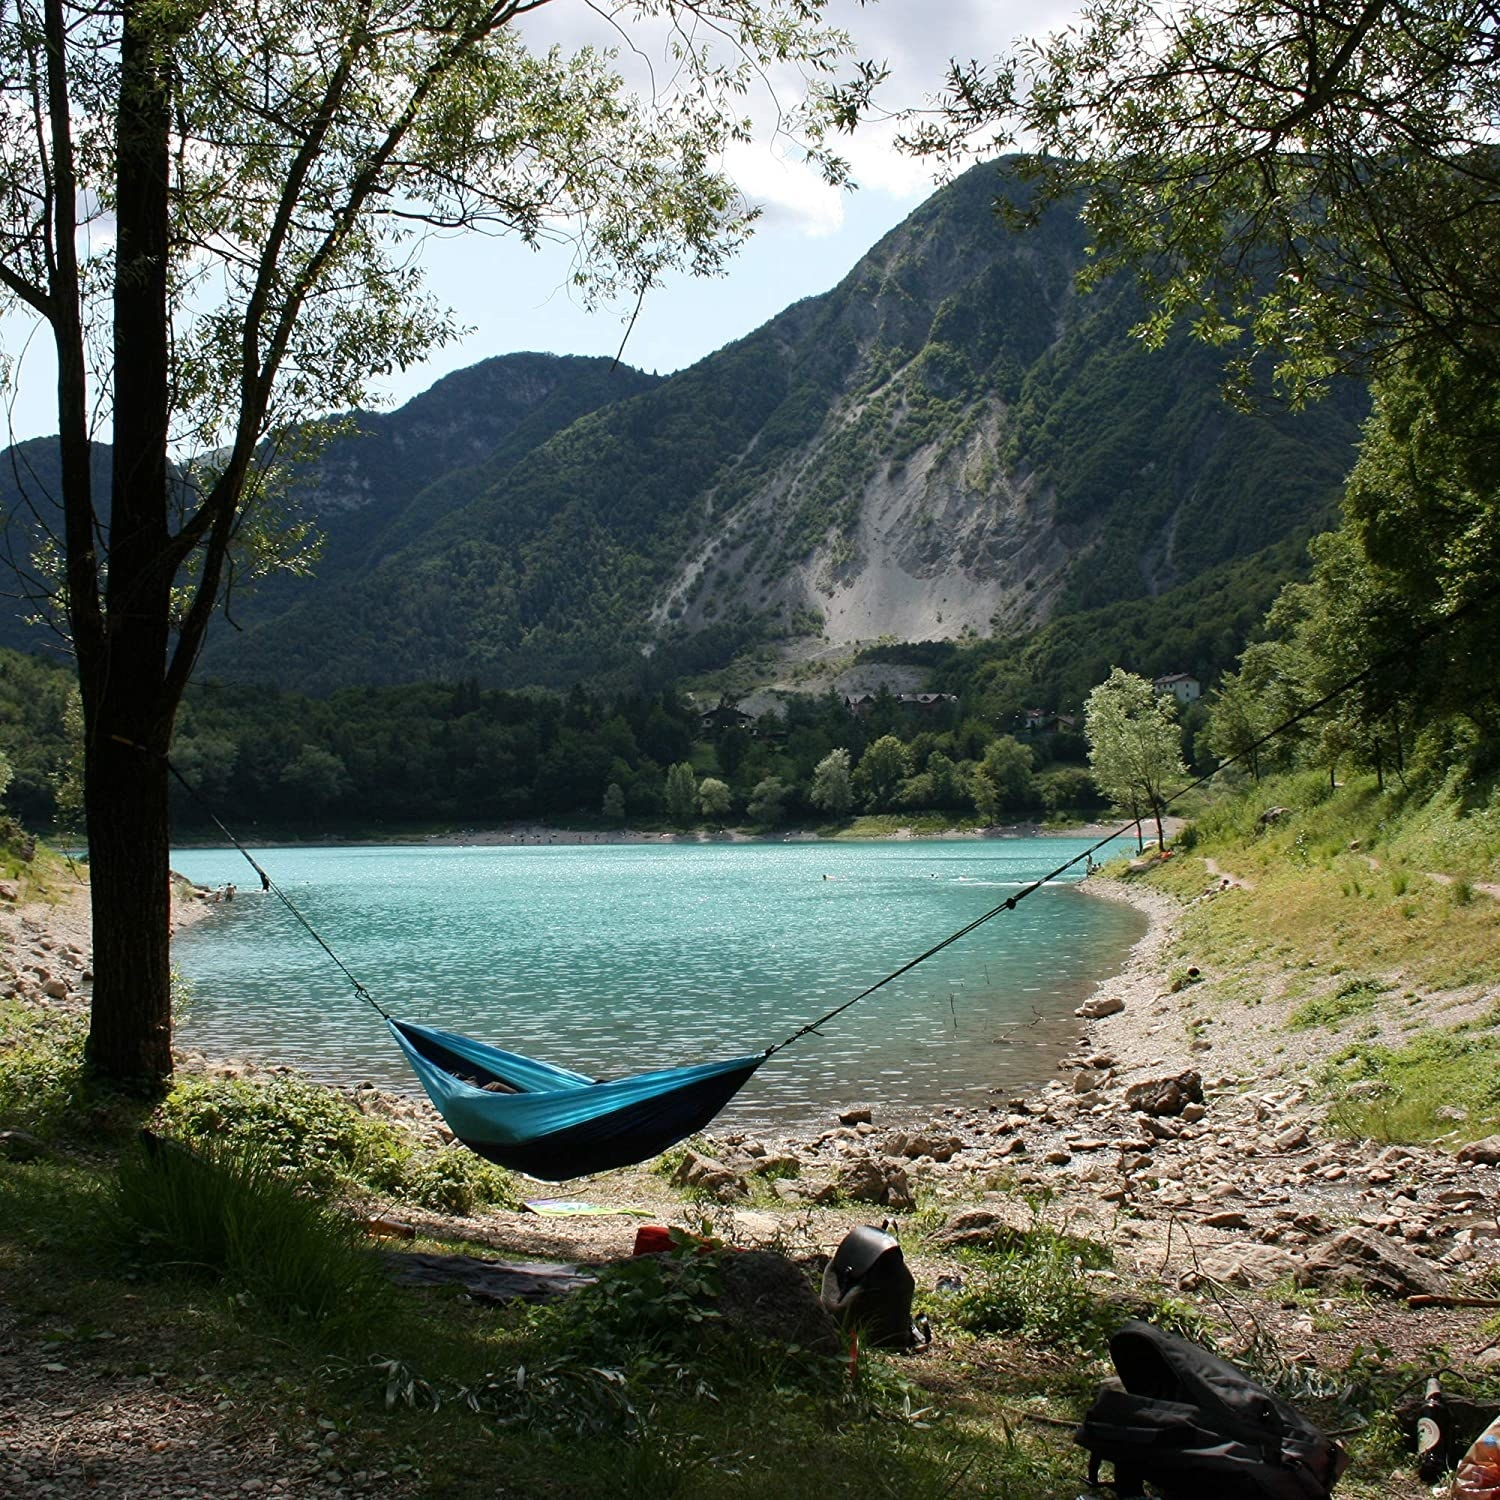 A person napping in the hammock beside a lake